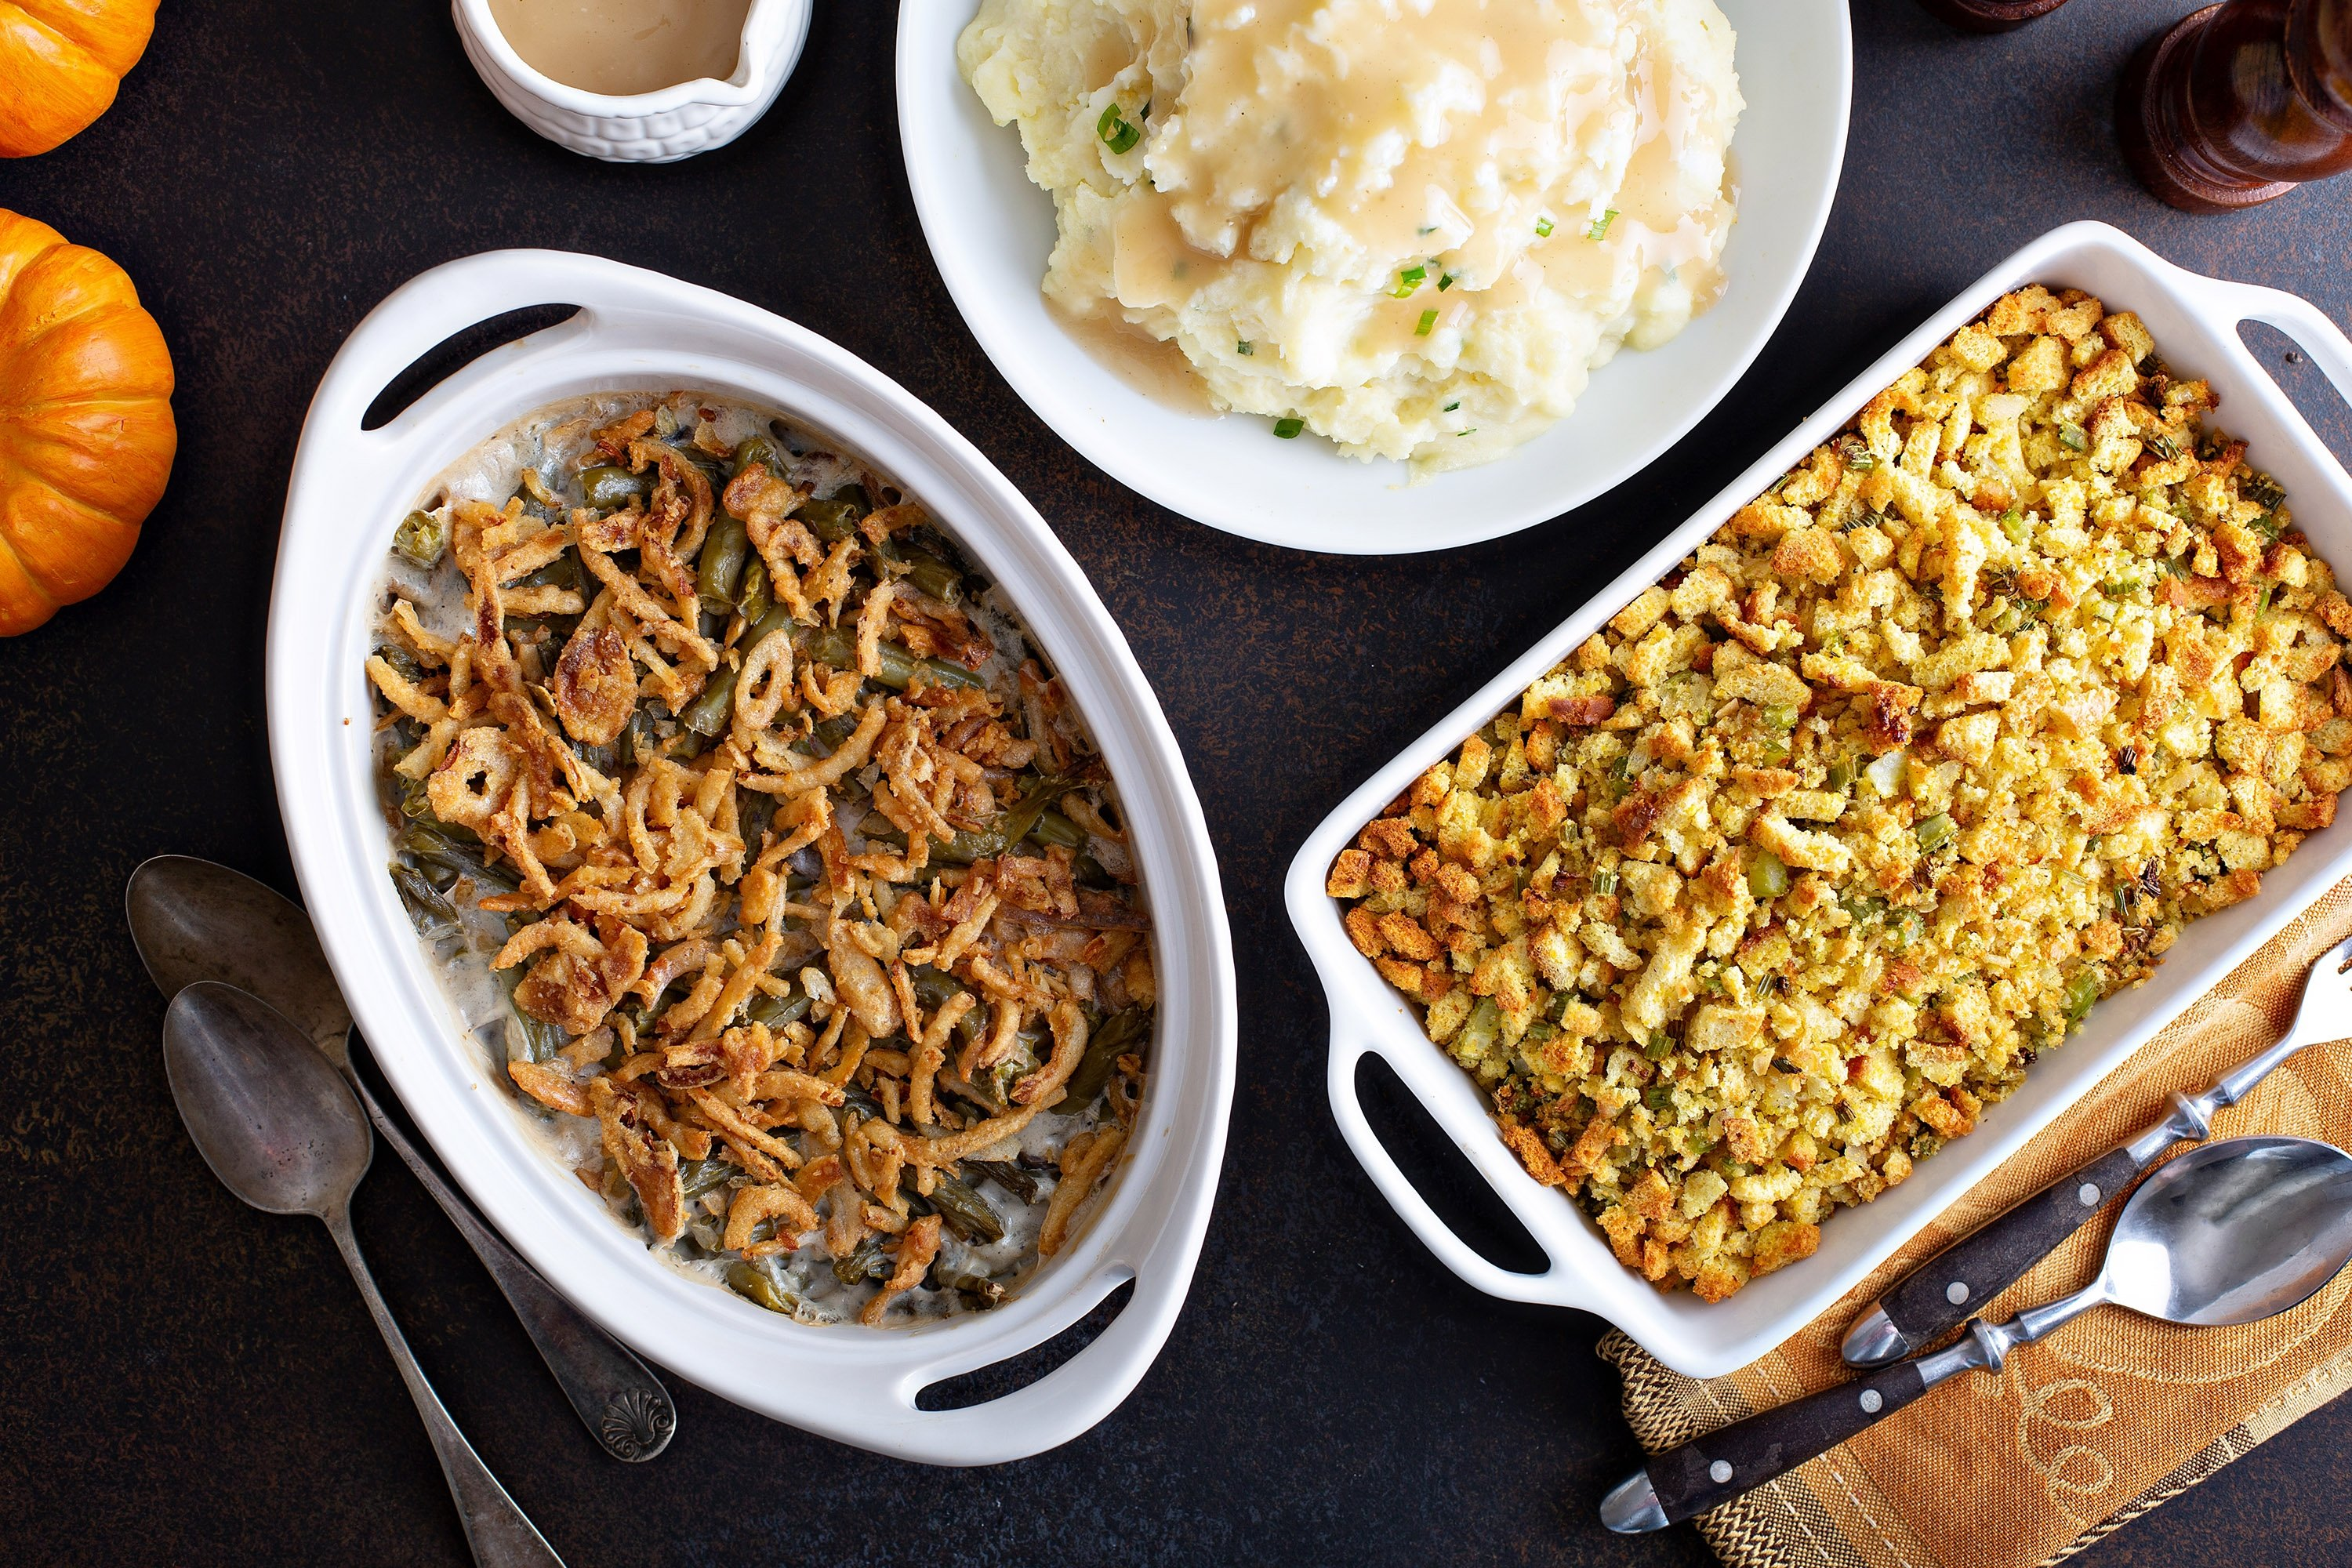 Green bean casserole, topped off with crispy onions, is the quintessential Thanksgiving side. (Shutterstock Photo)